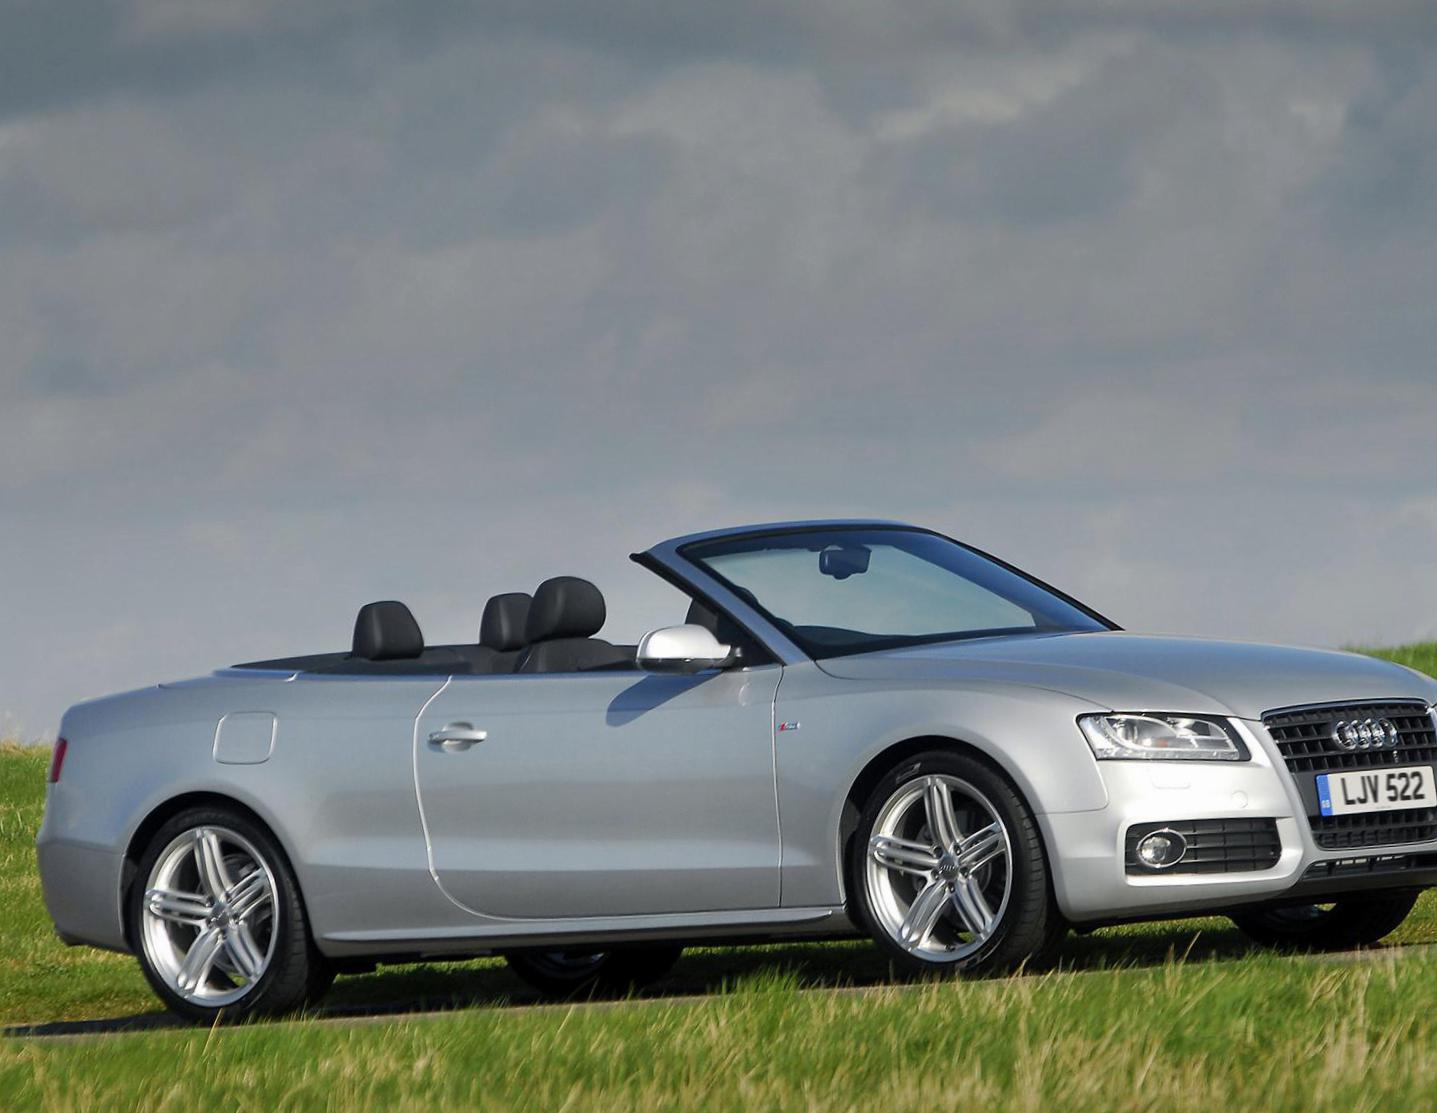 Audi A5 Cabriolet used 2009